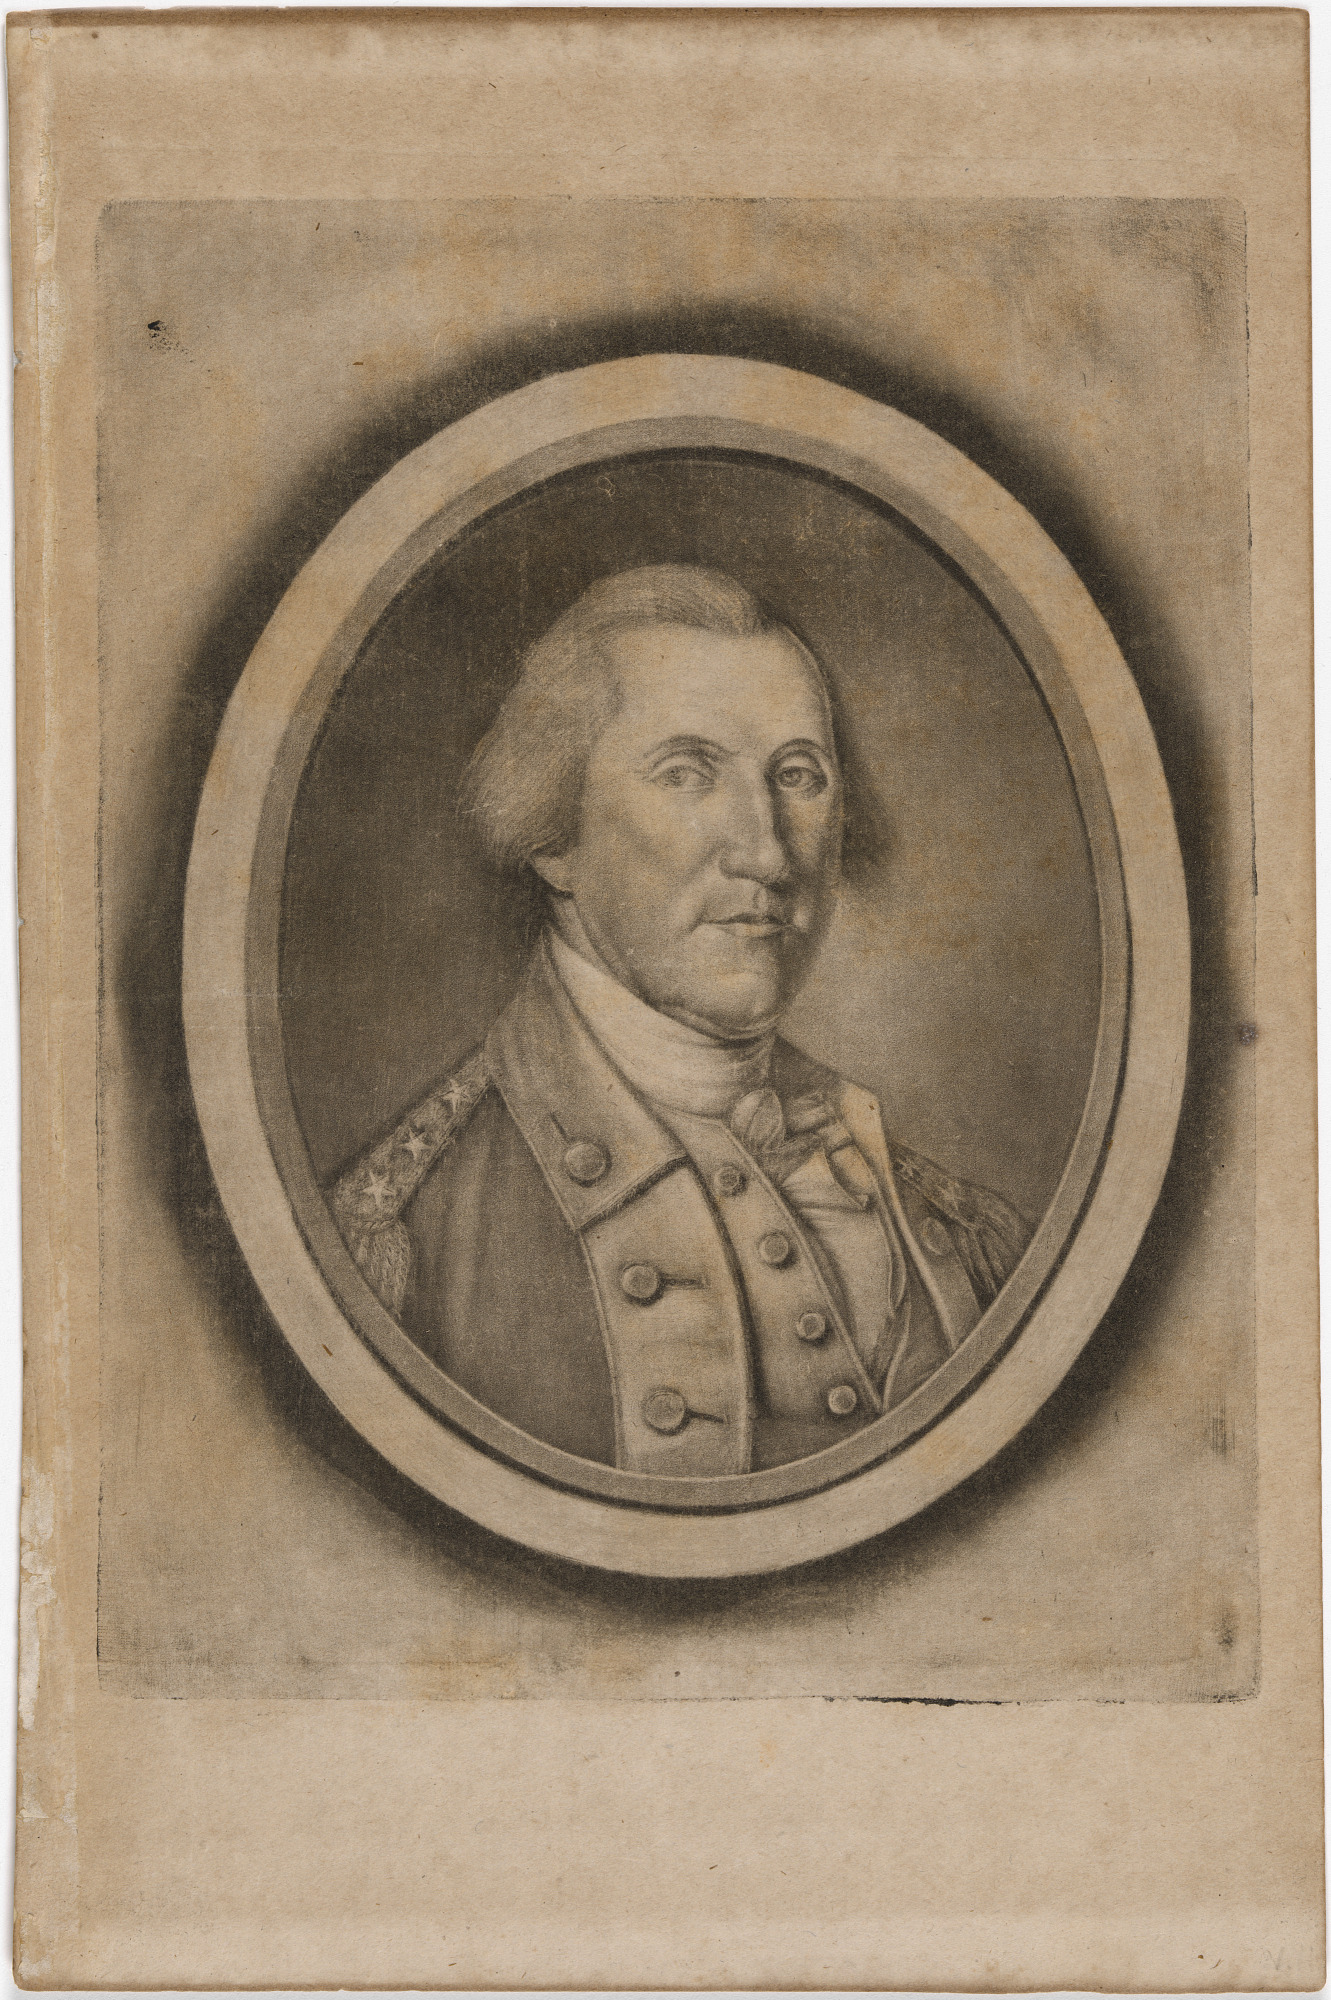 His Excel: G: WASHINGTON Esq: L.L.D. Late Commander in Chief of the ARMIES of the U.S. of AMERICA & PRESIDENT of the CONVENTION of 1787